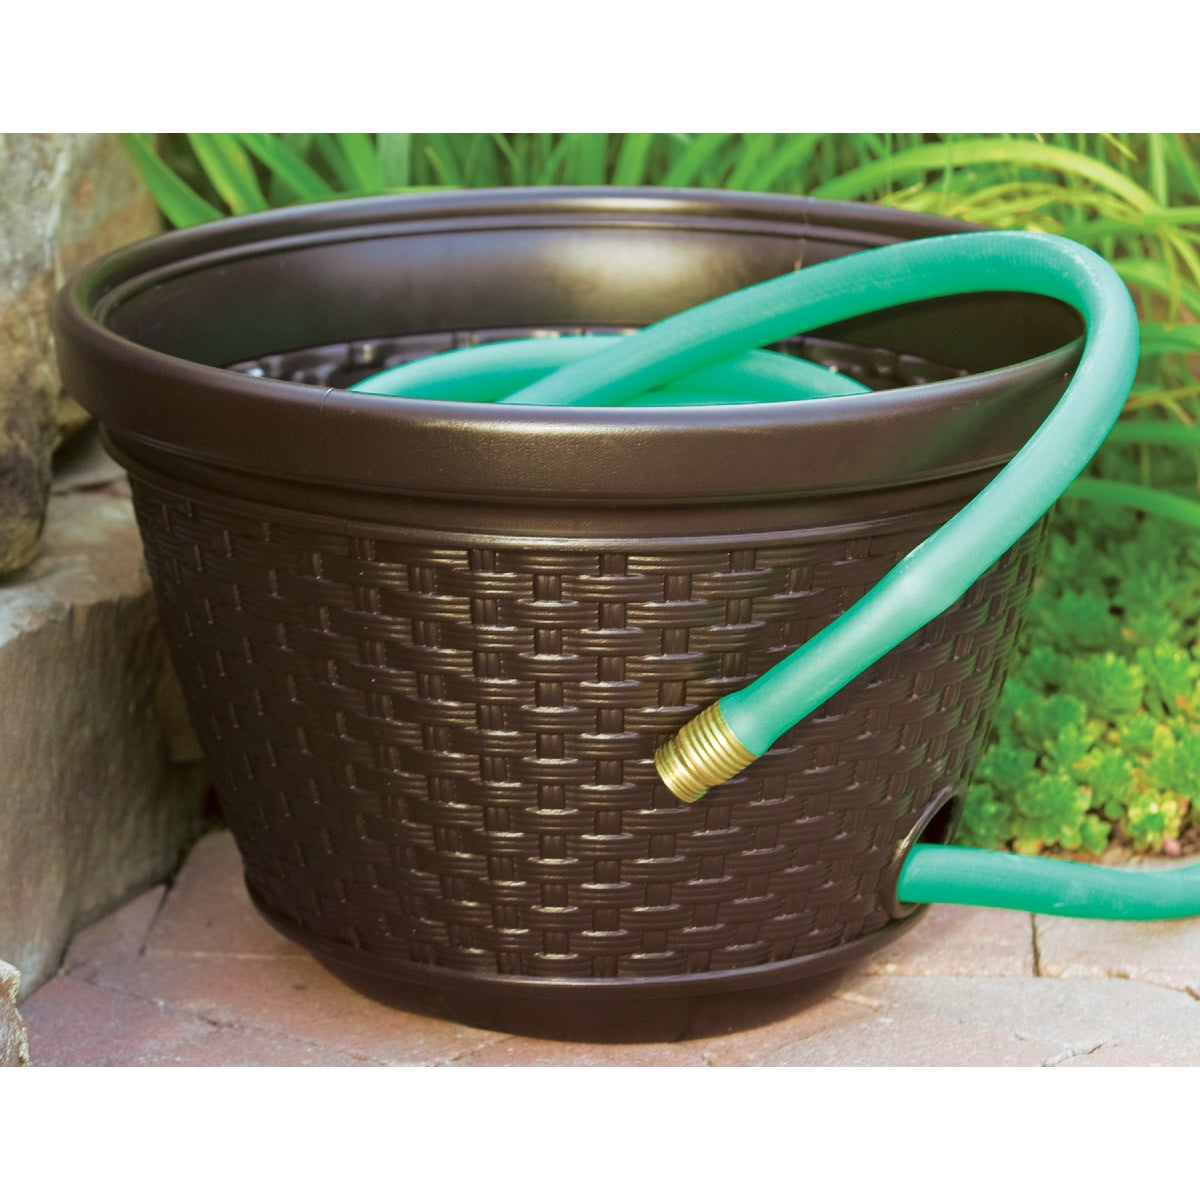 RESIN WICKER HOSE POT - HPW100 by Suncast Corporation